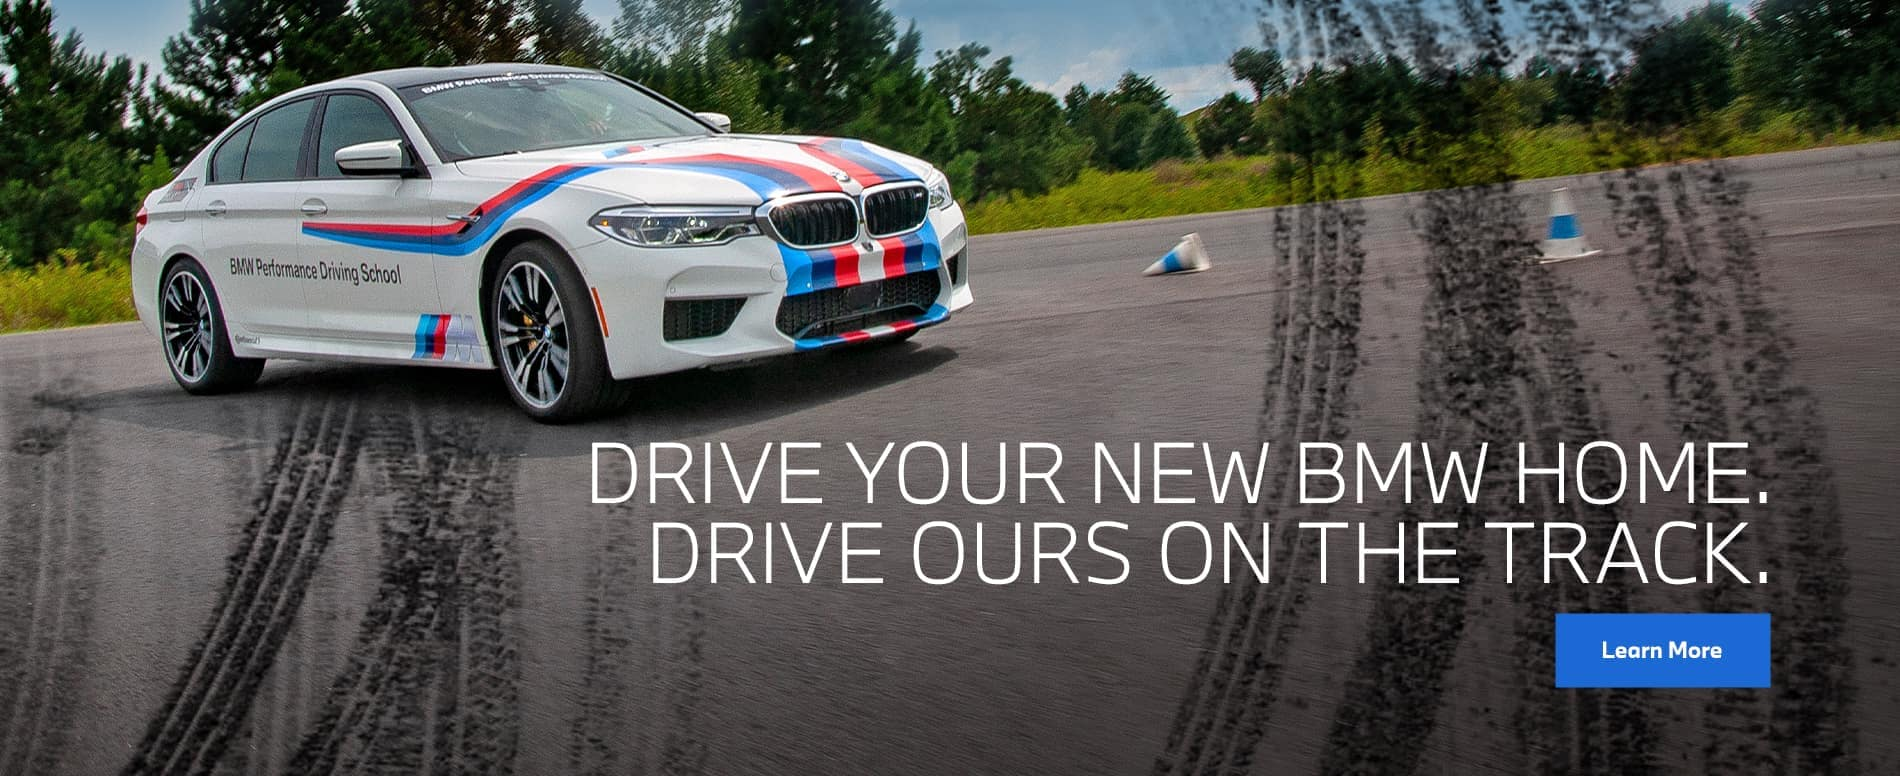 BMW New Owner Track Drive